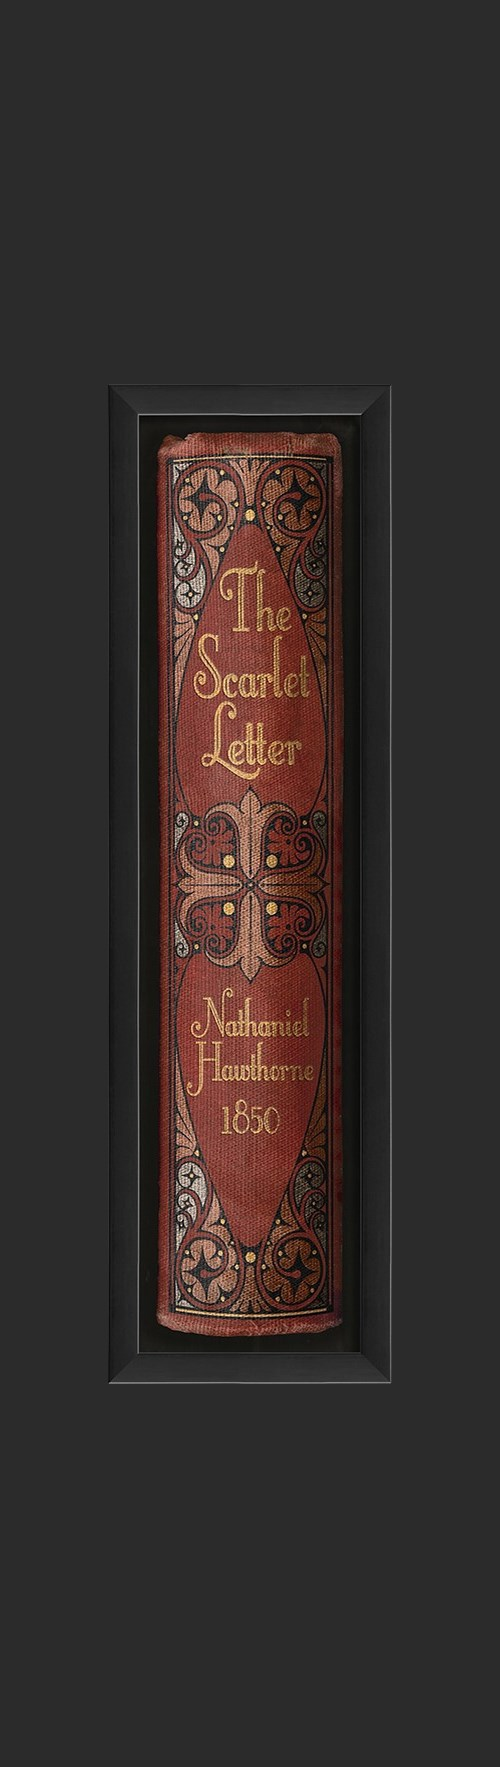 EB The Scarlet Letter